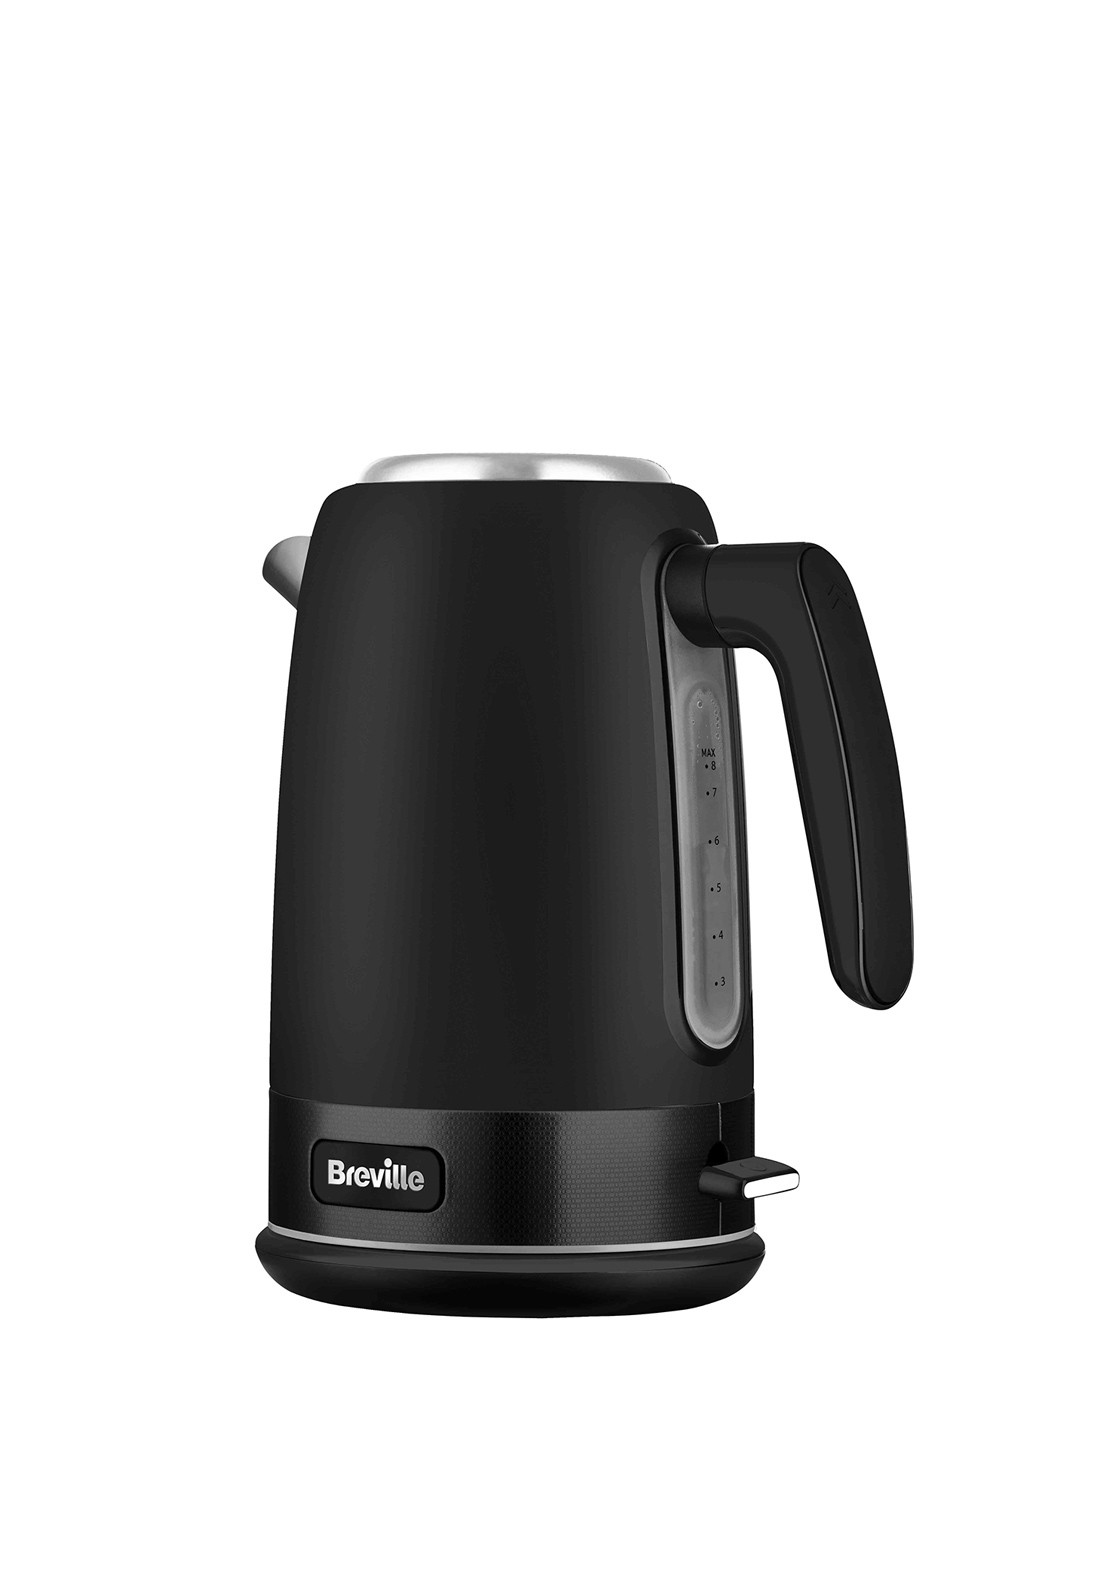 Breville New York Collection Kettle, Black